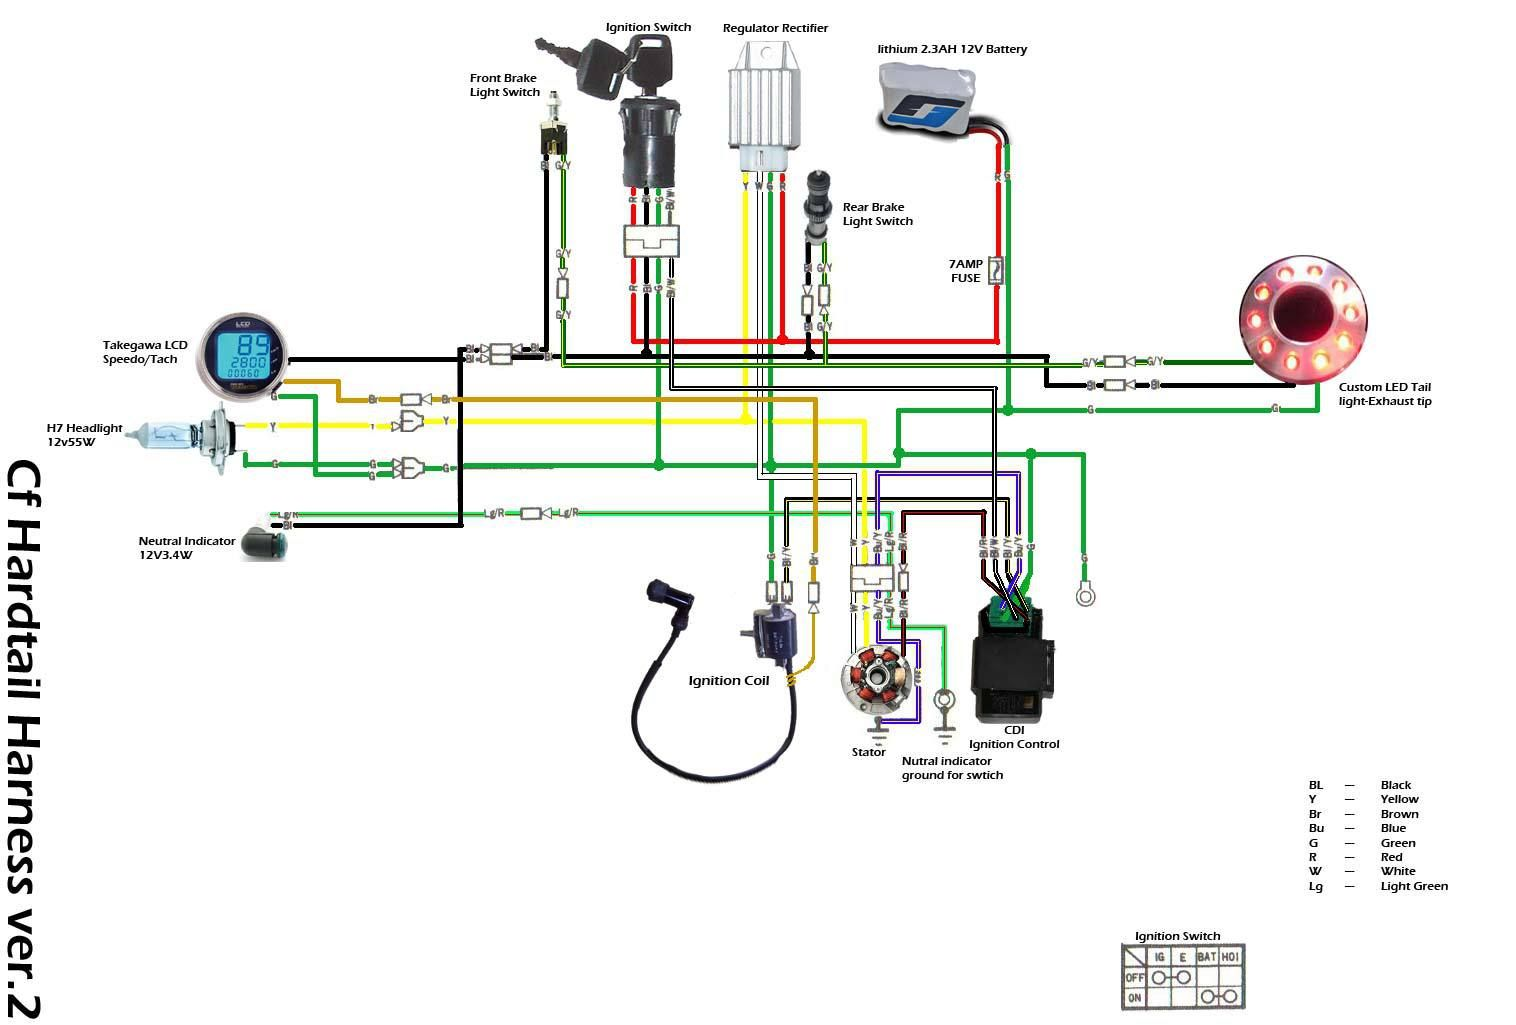 basic wiring diagram 110v schema diagram database basic switch wiring 110 [ 1516 x 1025 Pixel ]